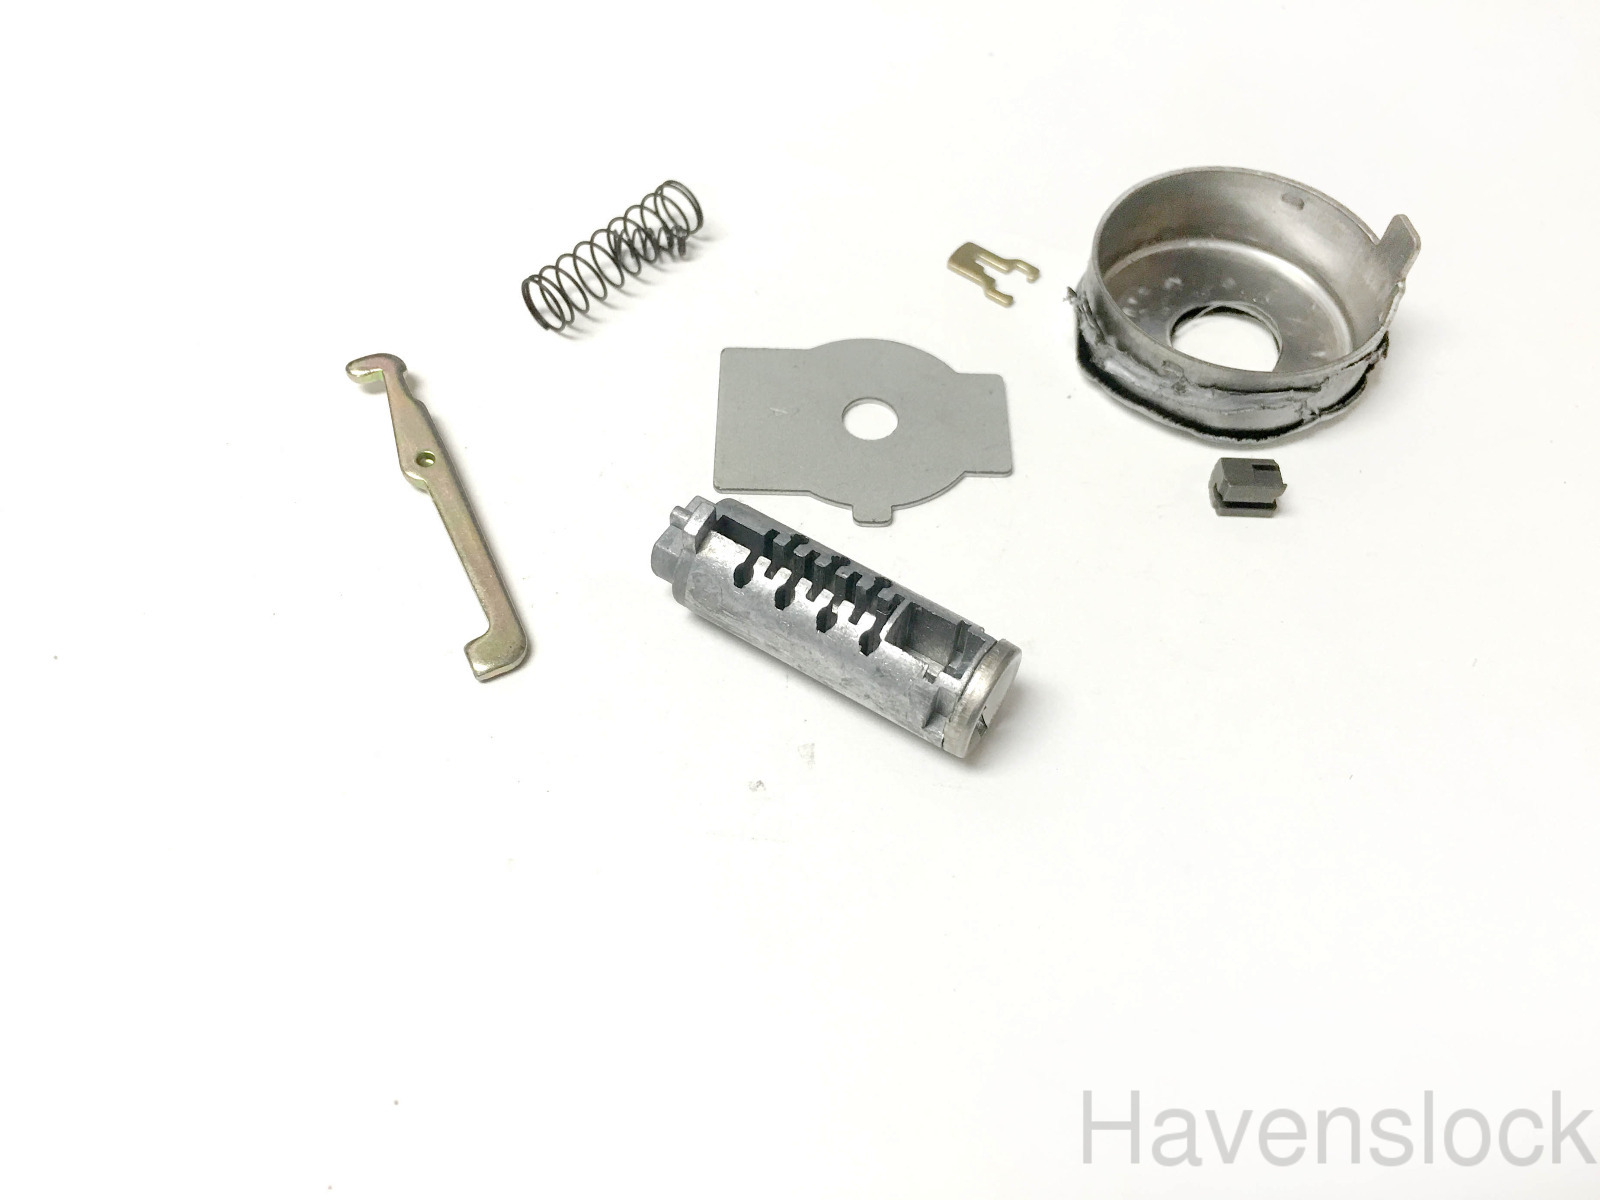 SL10 Ignition Service Pack C-20-108, X131 Keyway